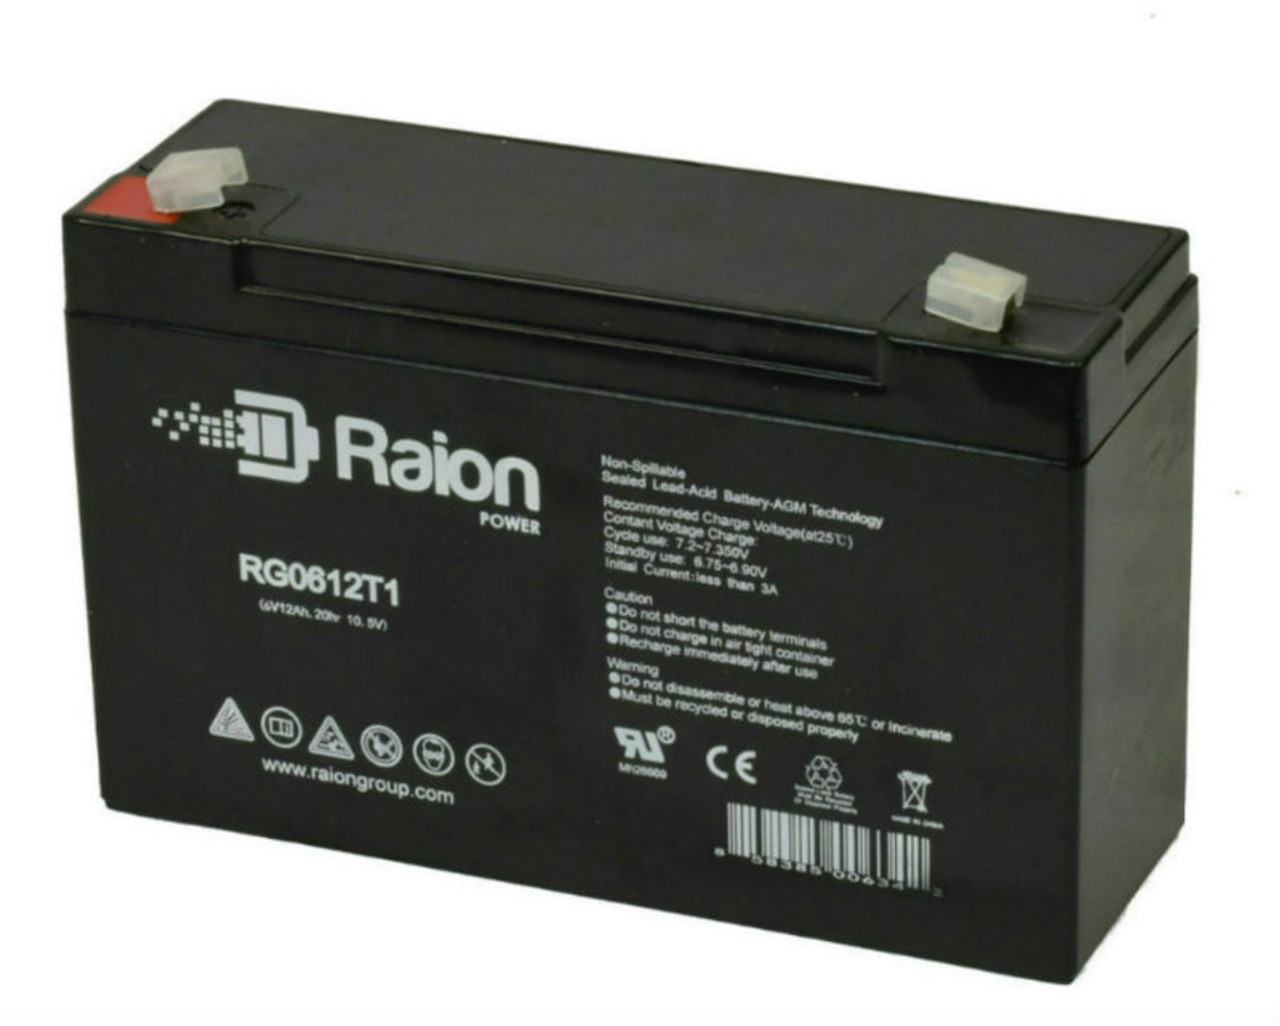 Raion Power RG06120T1 Replacement Battery Pack for Chloride 1000010077 emergency light